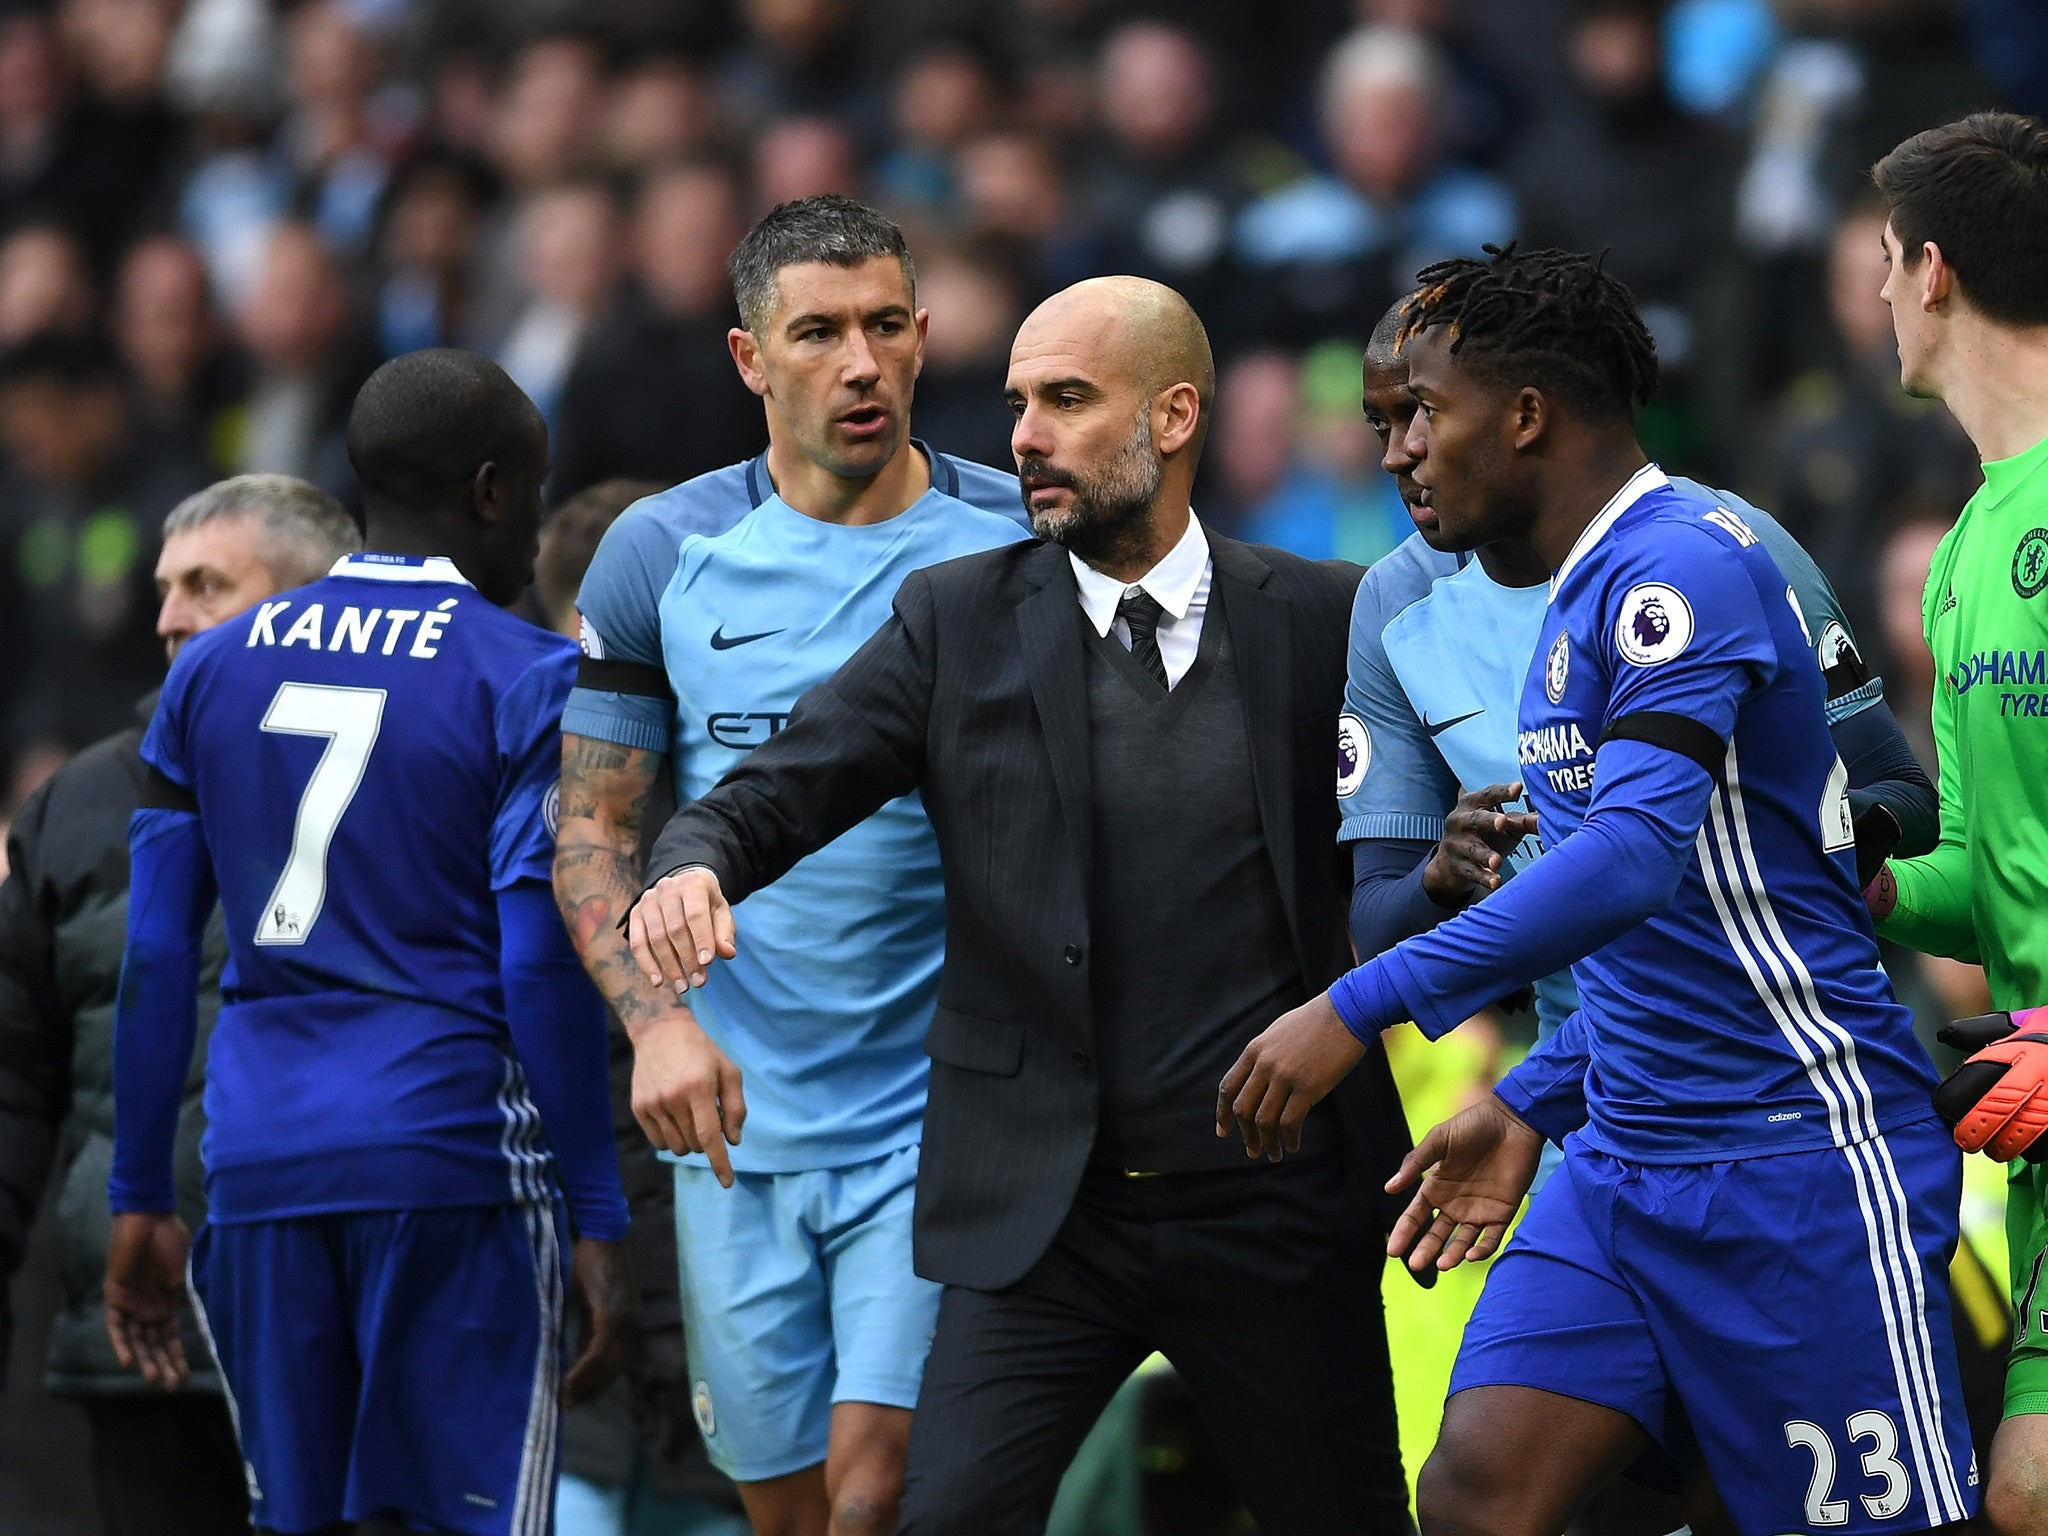 Chelsea Vs Man City Channel: Chelsea Vs Manchester City: What Time Does It Start, Where